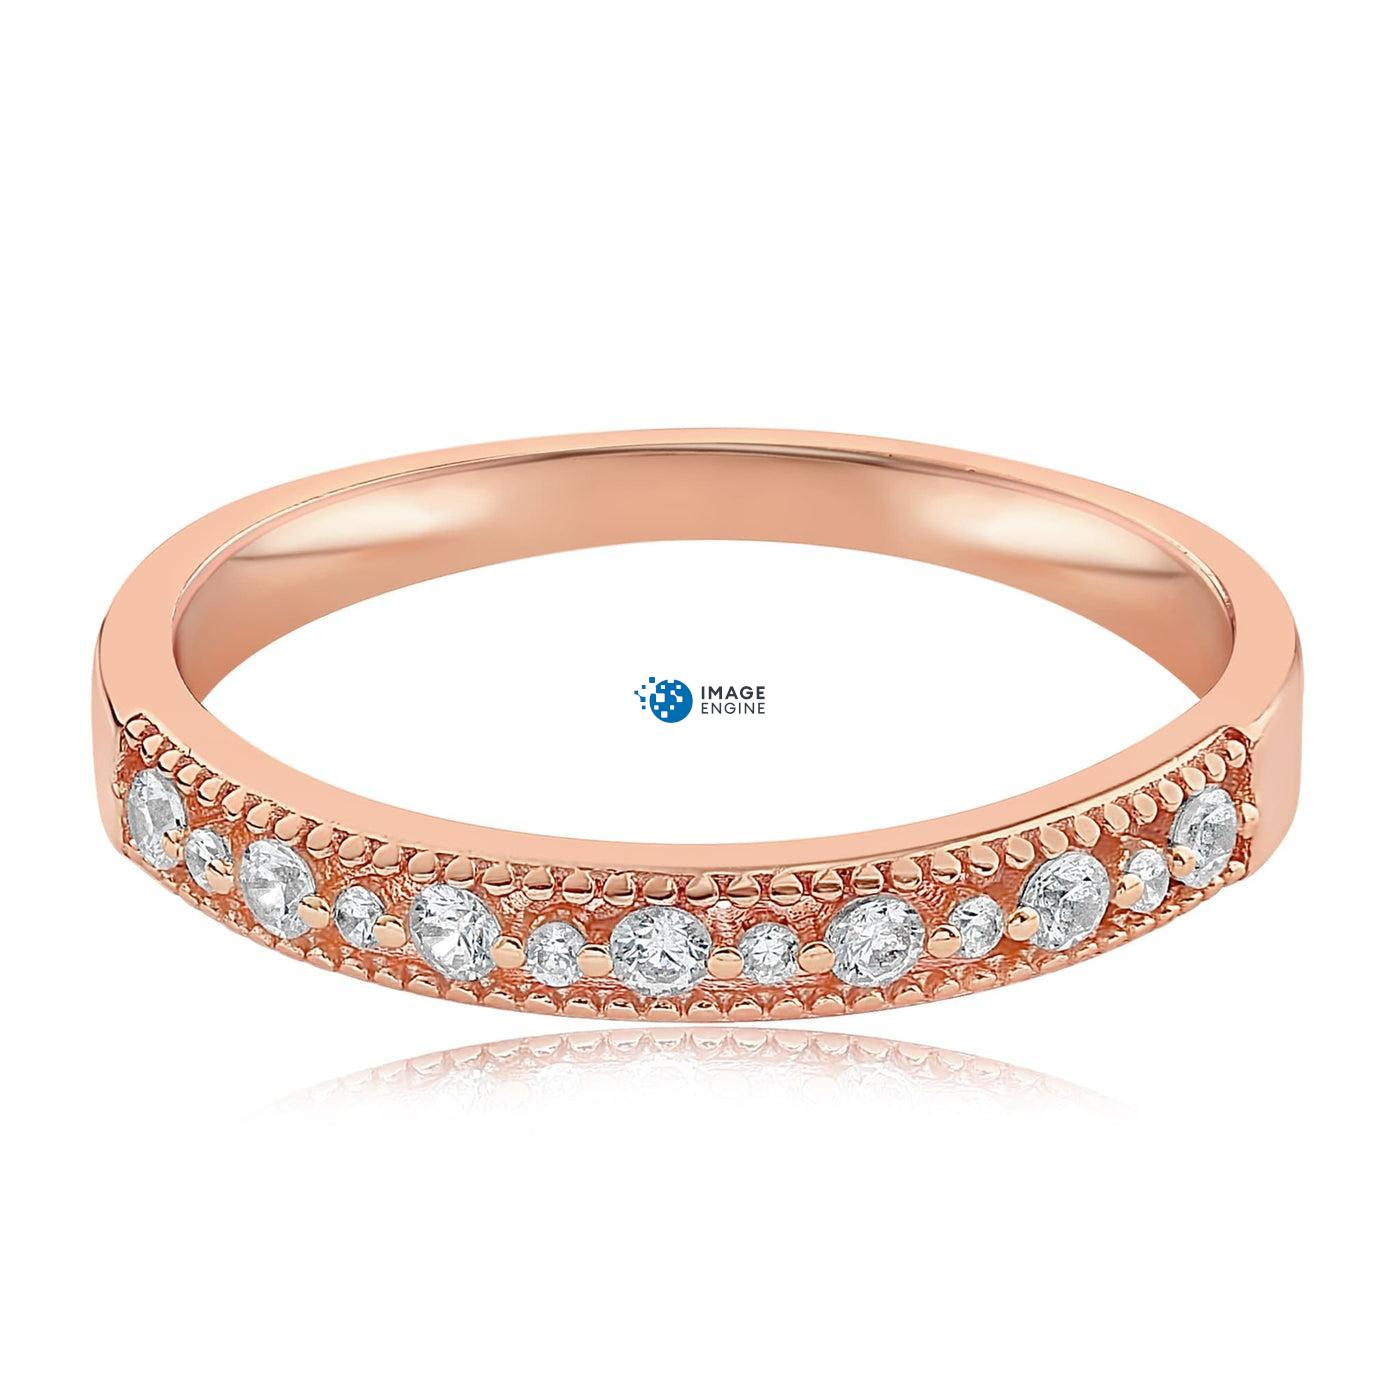 Joyce Layered Stack Ring - Side View - 18K Rose Gold Vermeil